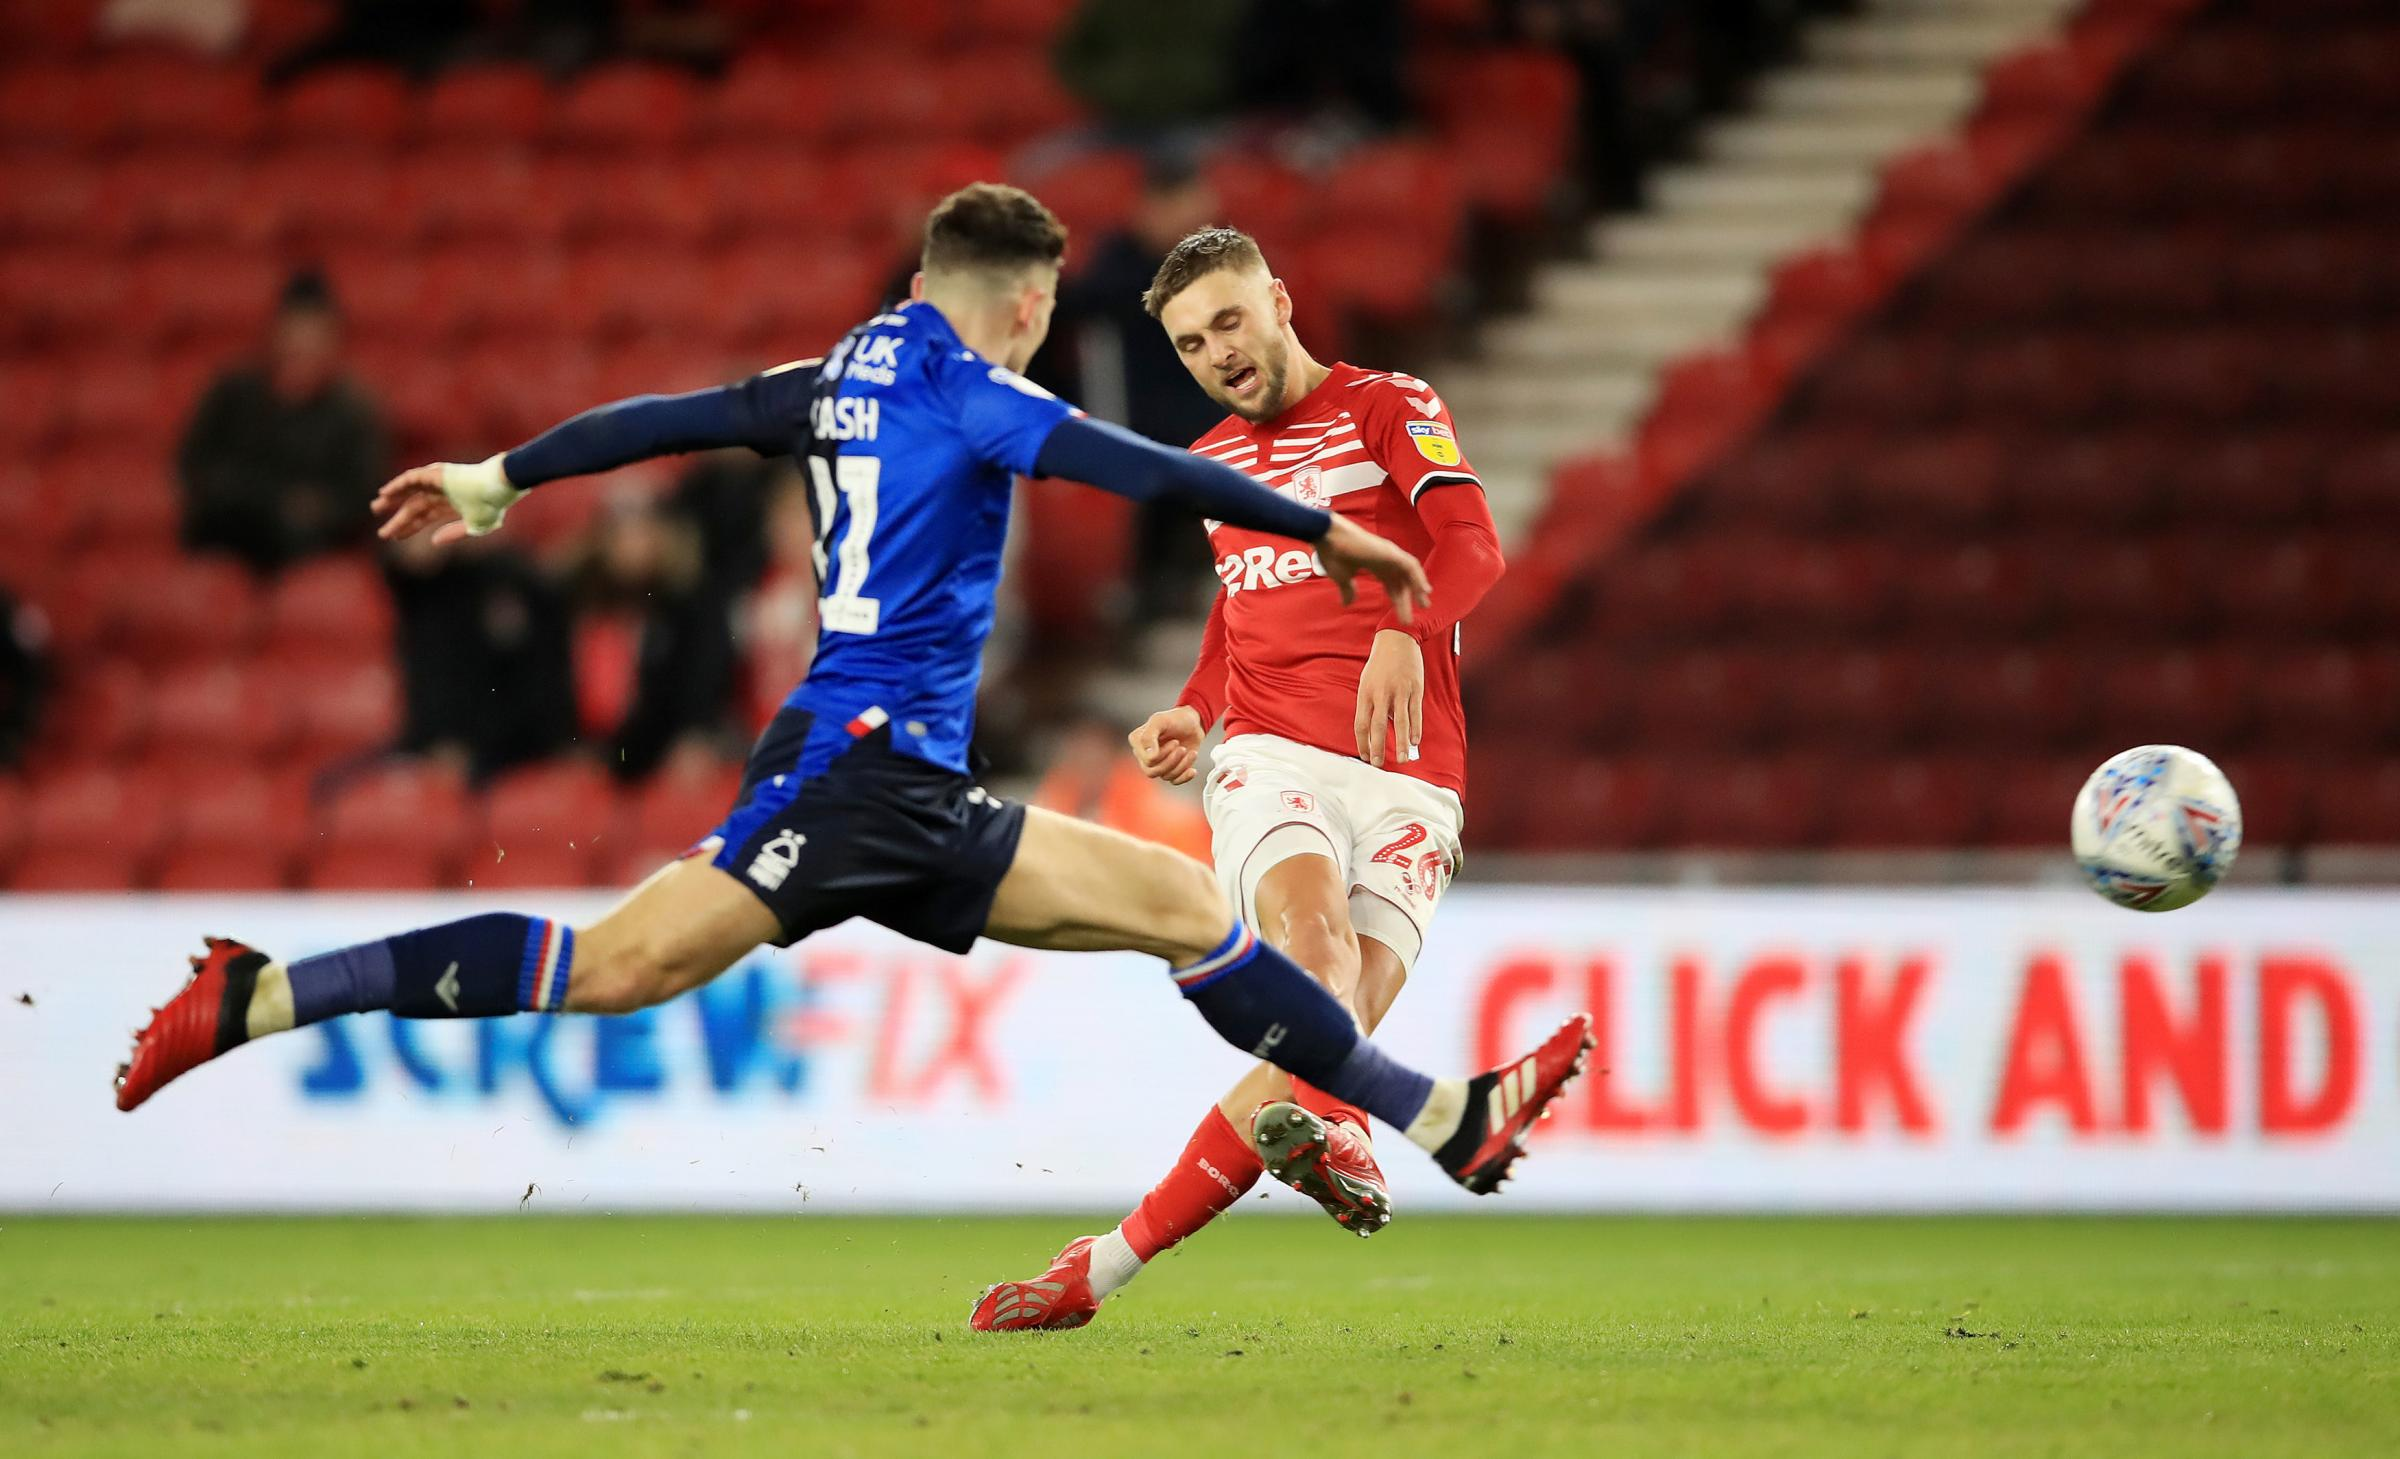 Middlesbrough could be back in EFL action next month